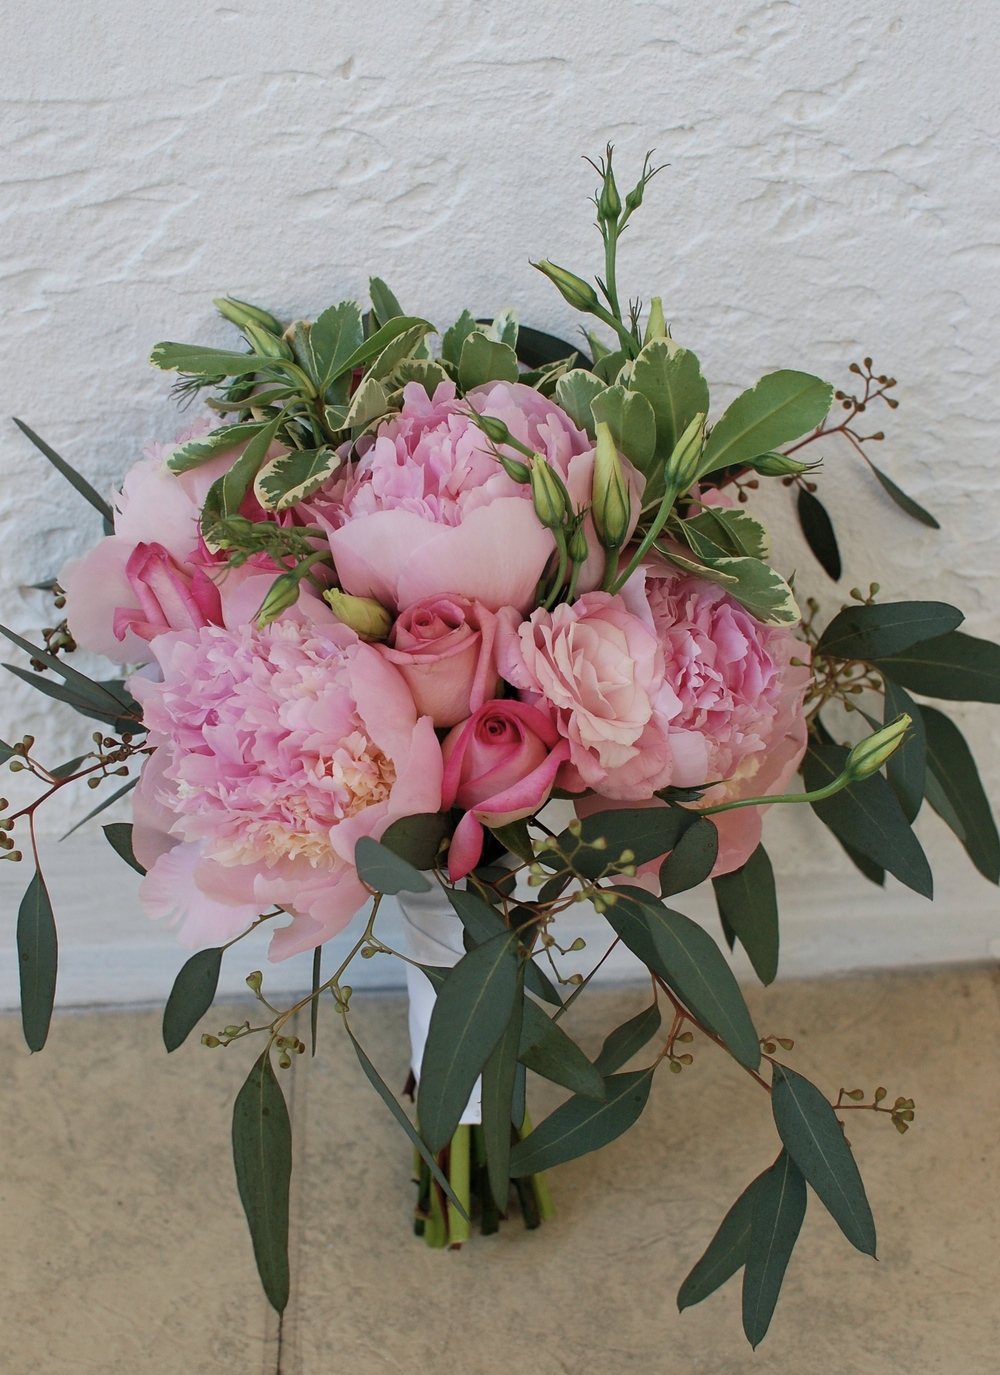 Peonies, roses, lisianthus, and seeded eucalyptus